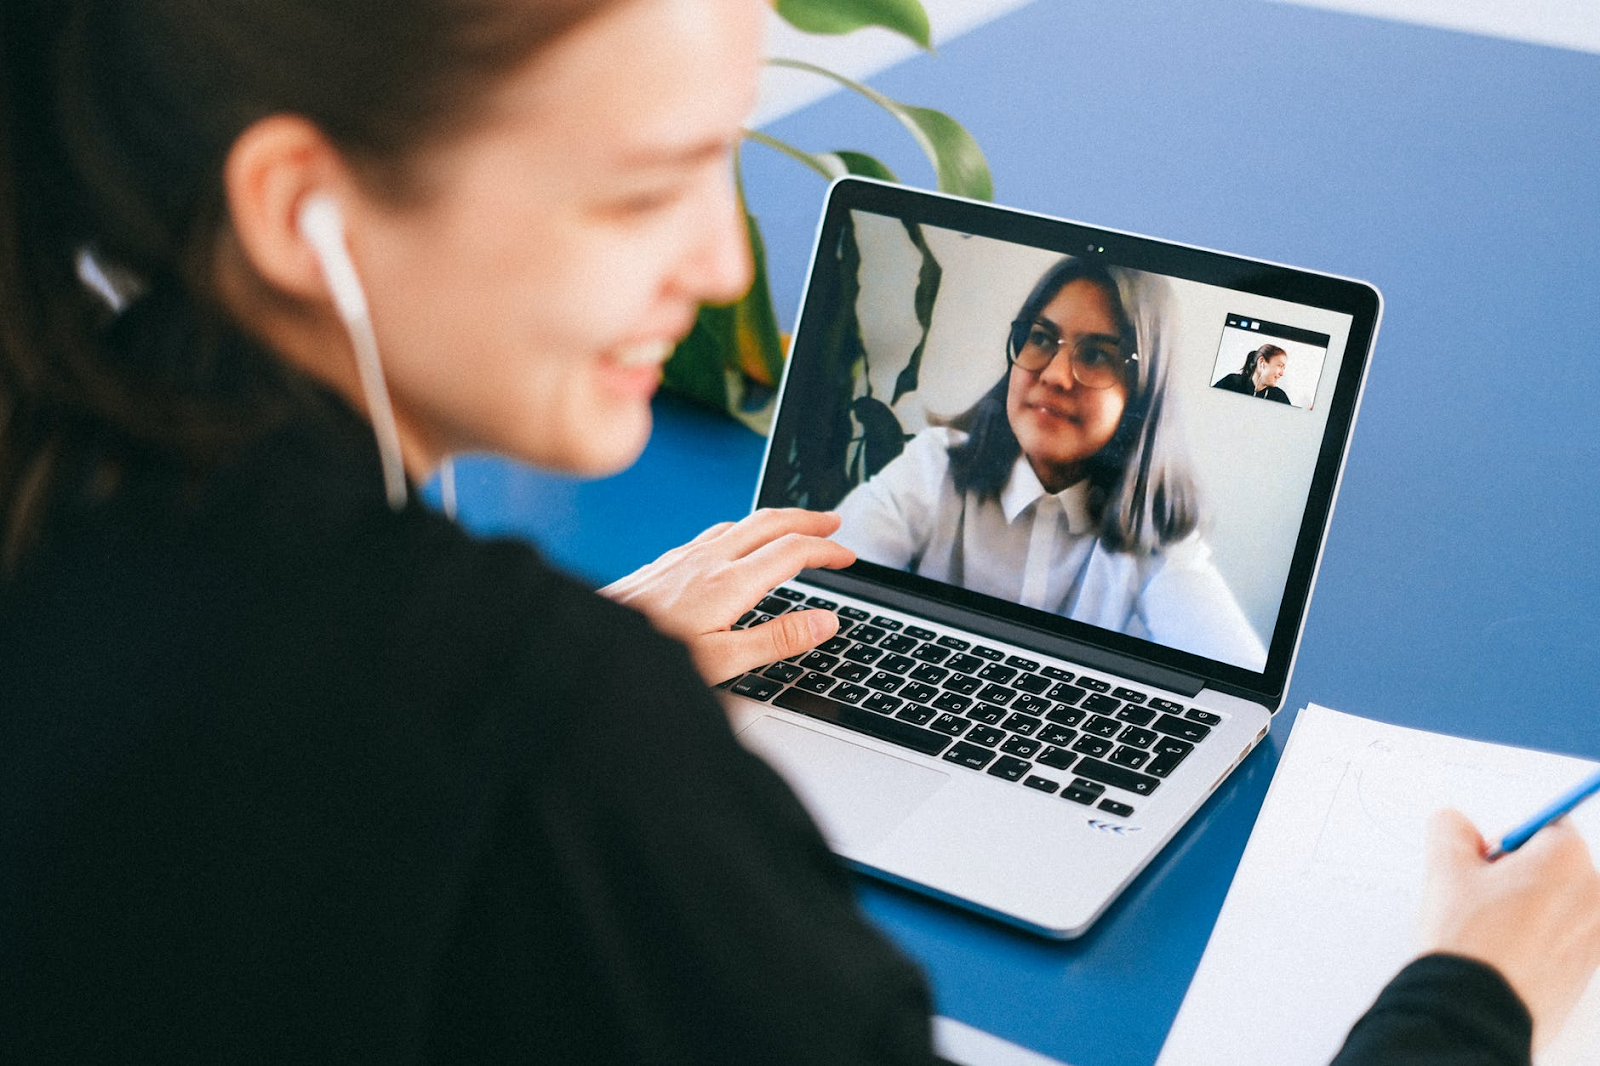 A woman chats and laughs with her friend through a video call on her laptop